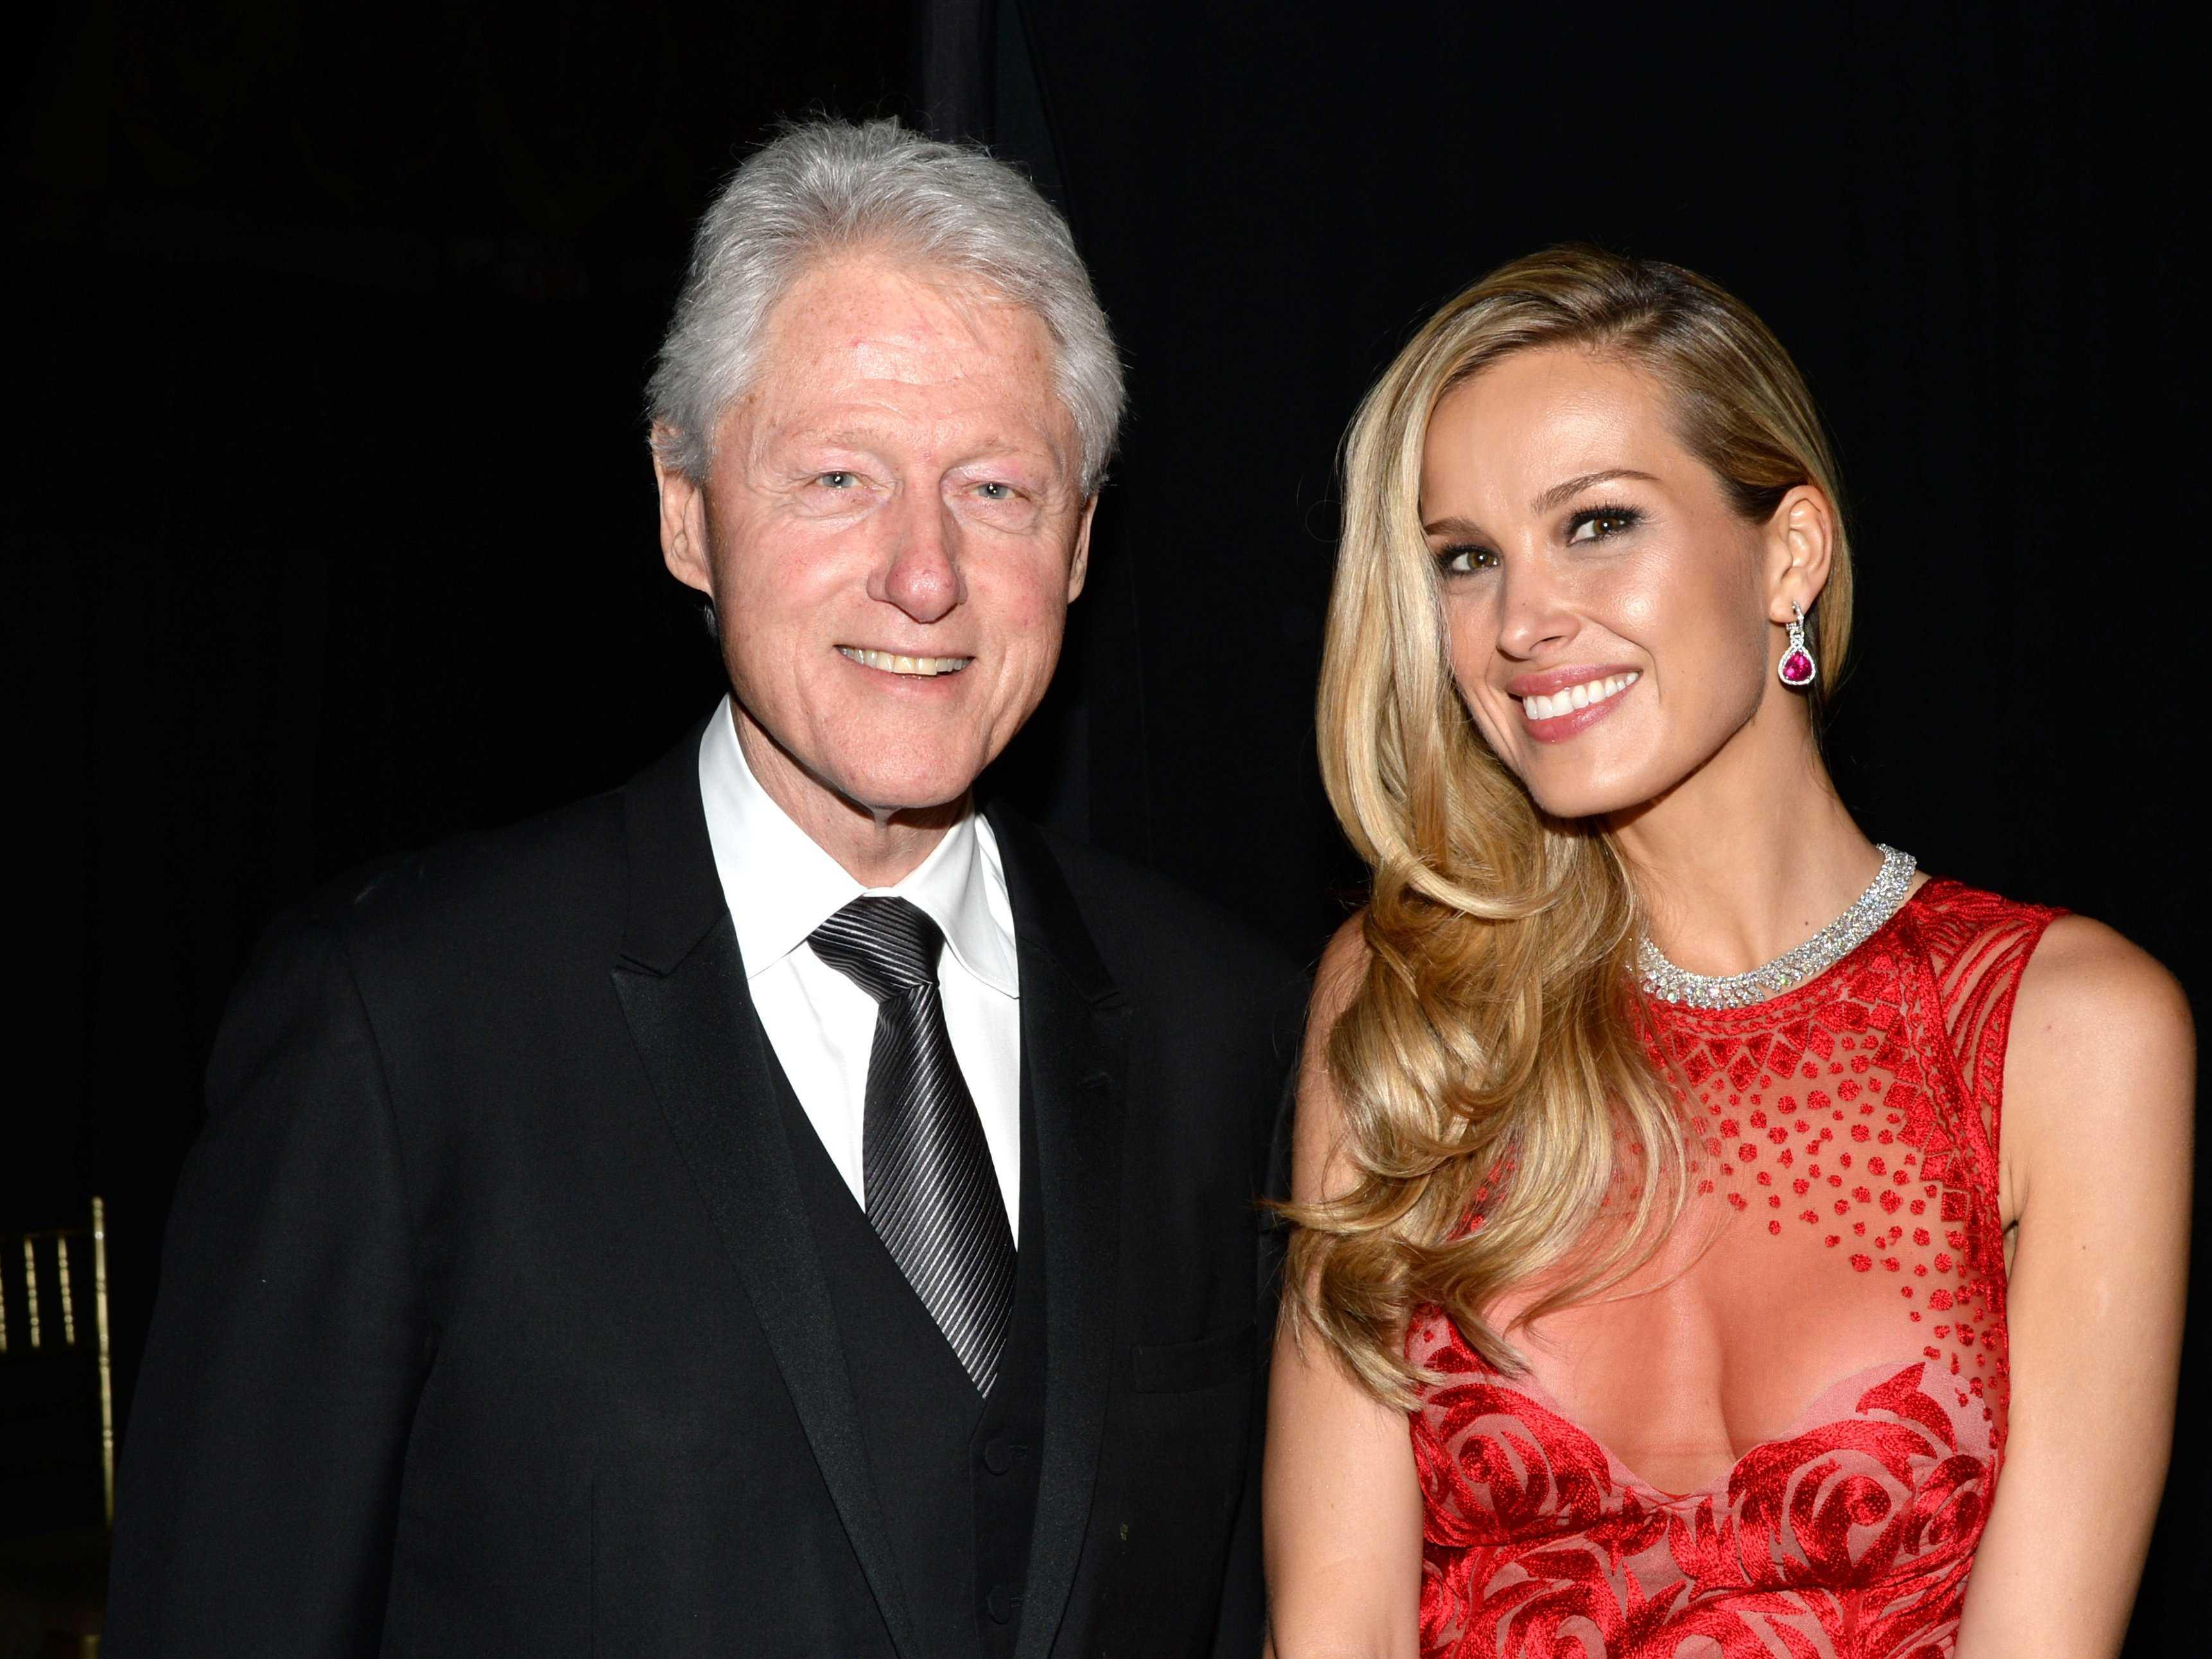 The latest Clinton cash intrigue involves a Czech model and a 'distasteful' $500,000 donation